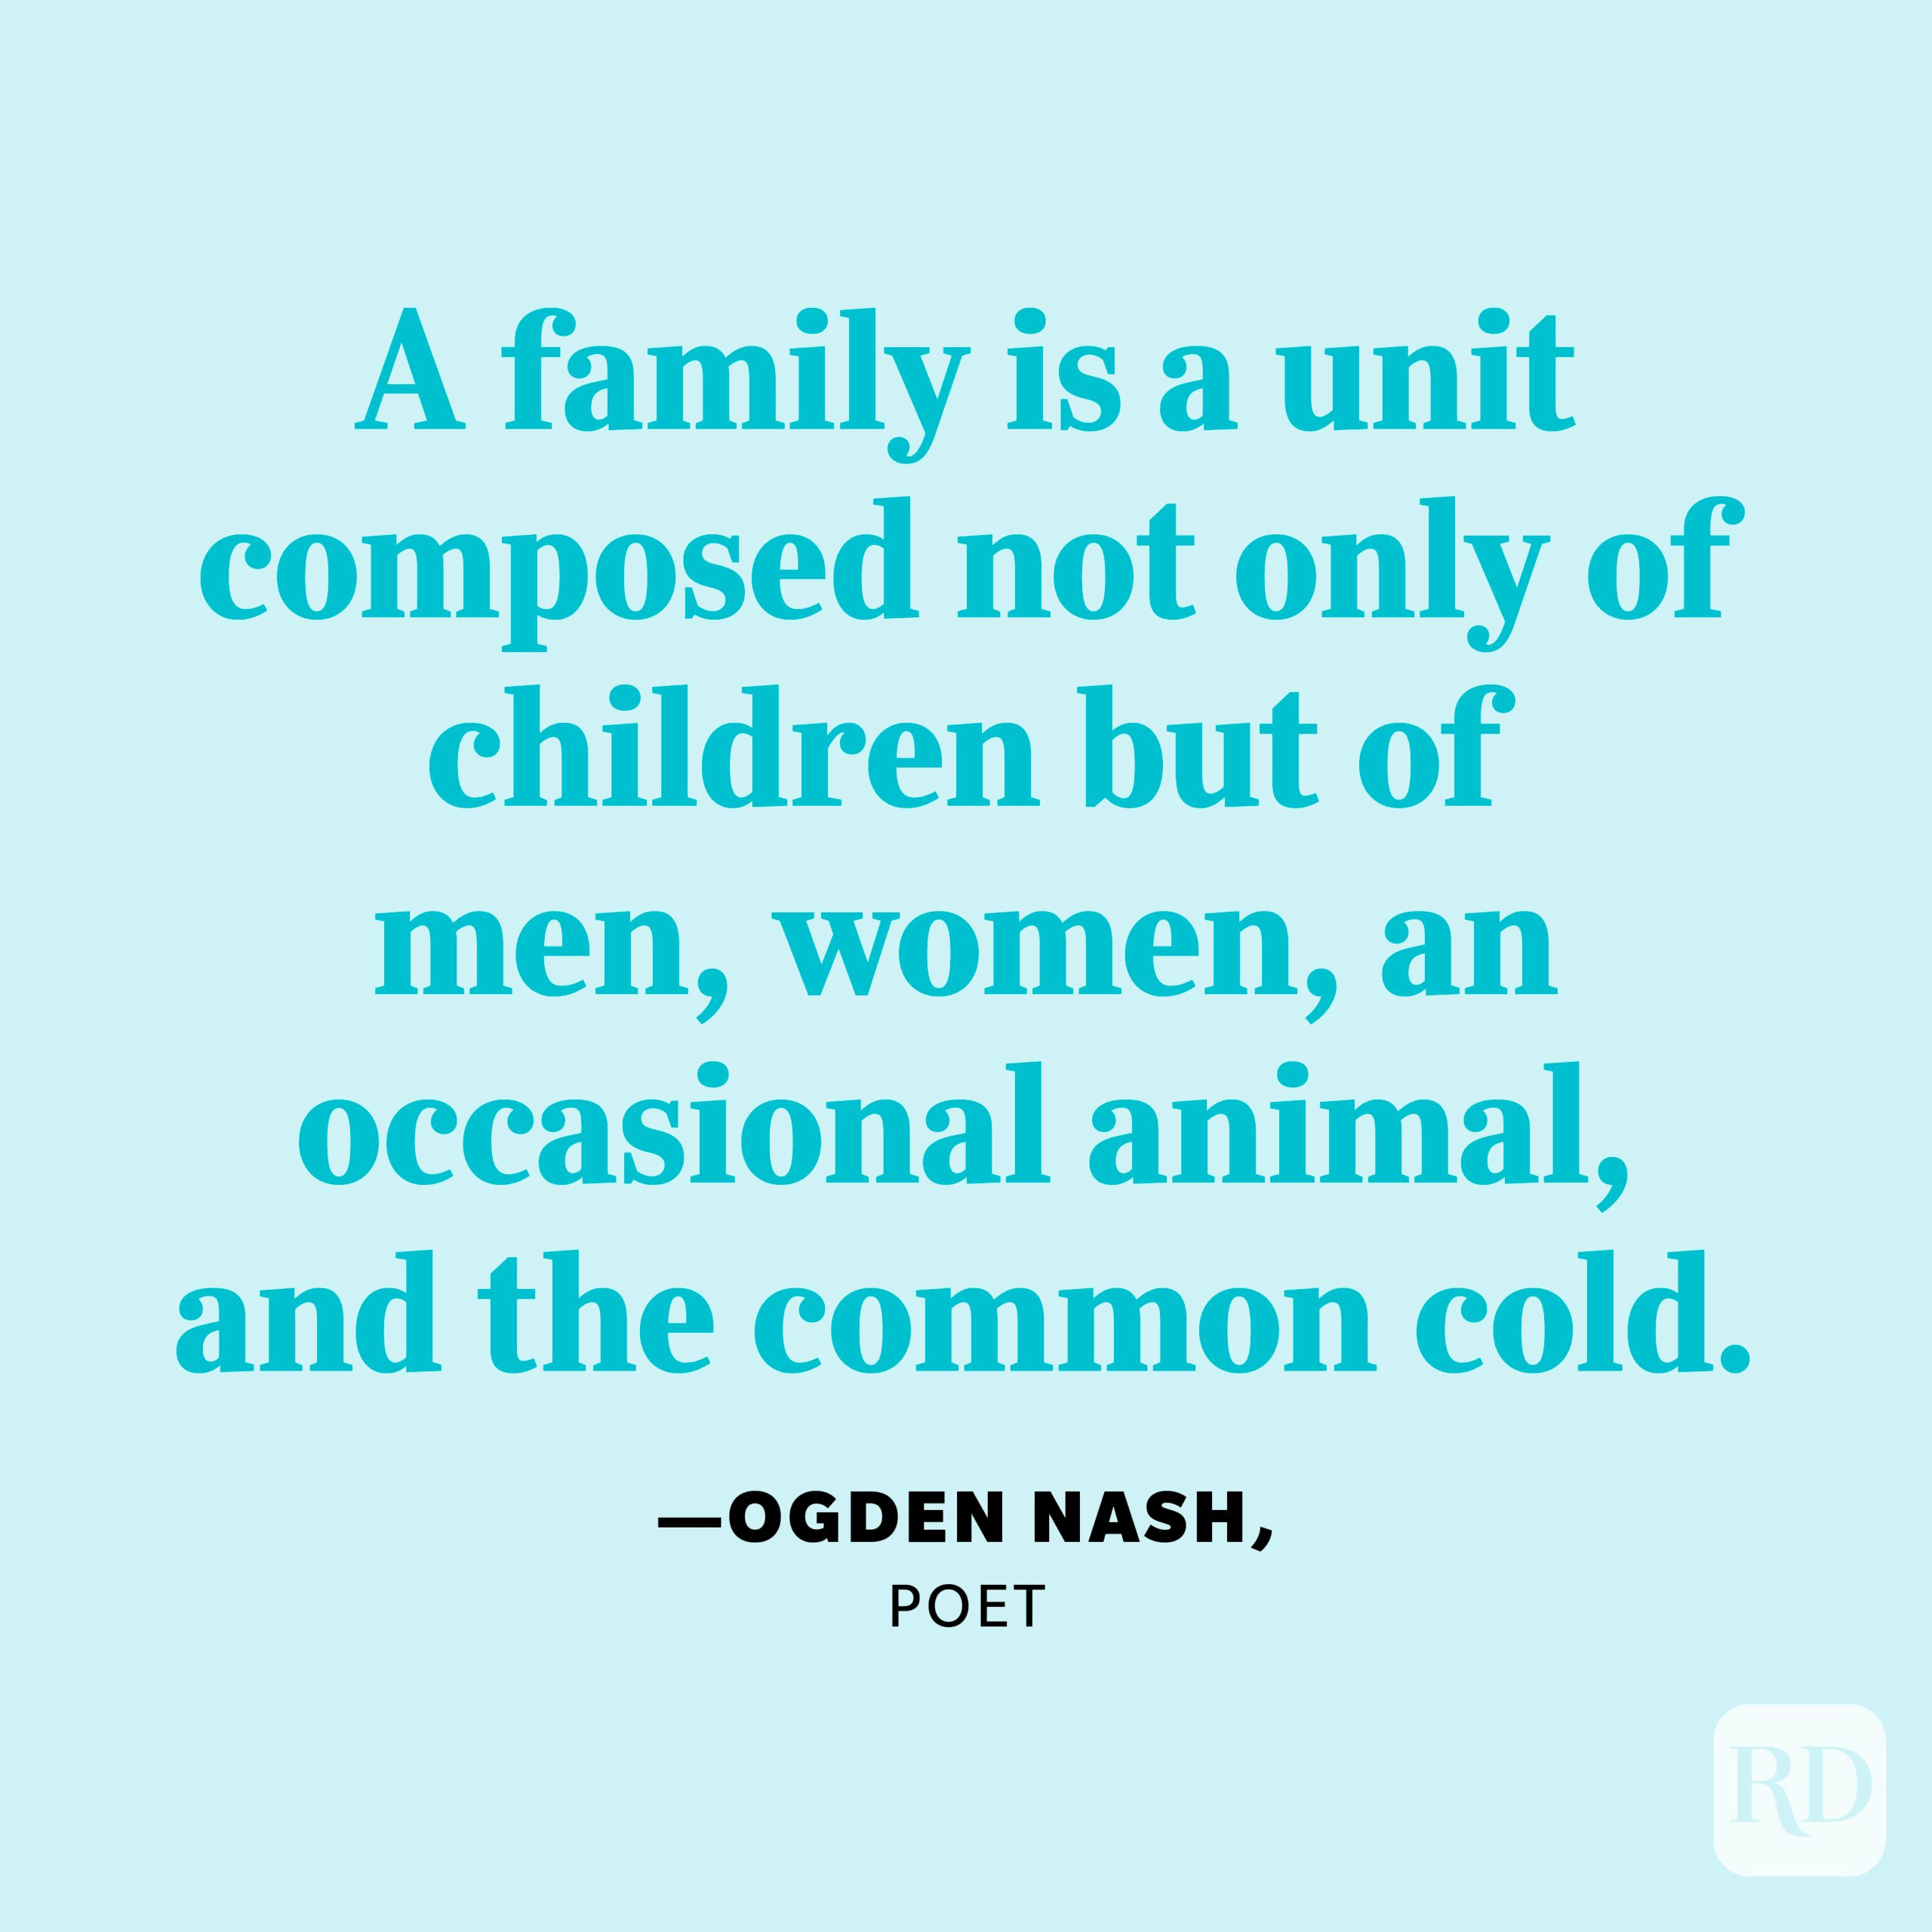 """""""A family is a unit composed not only of children but of men, women, an occasional animal, and the common cold."""" —Ogden Nash, poet"""